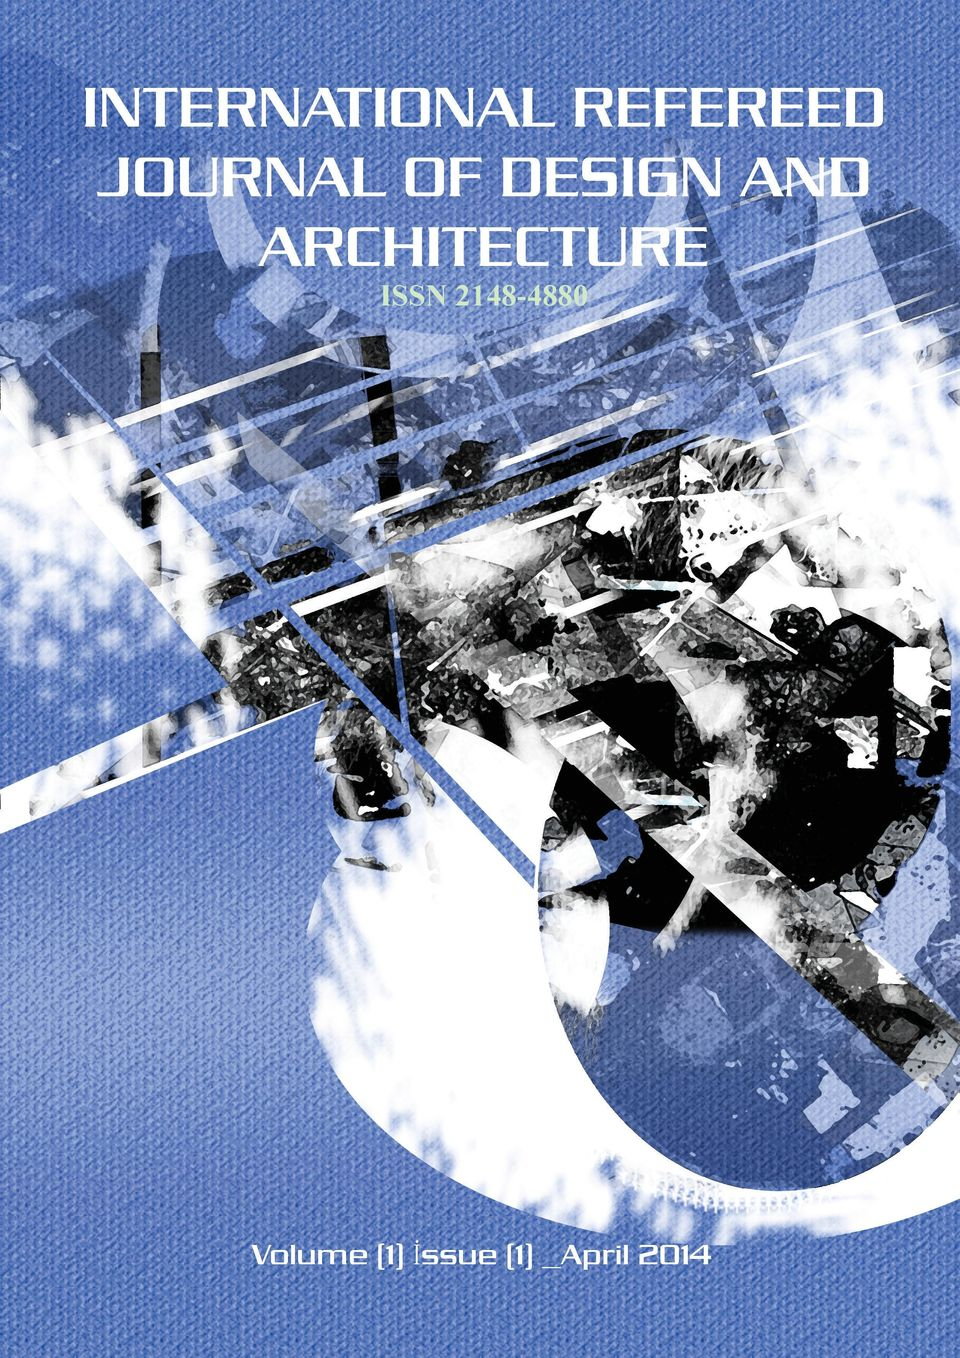 ARCHITECTURE ISSN